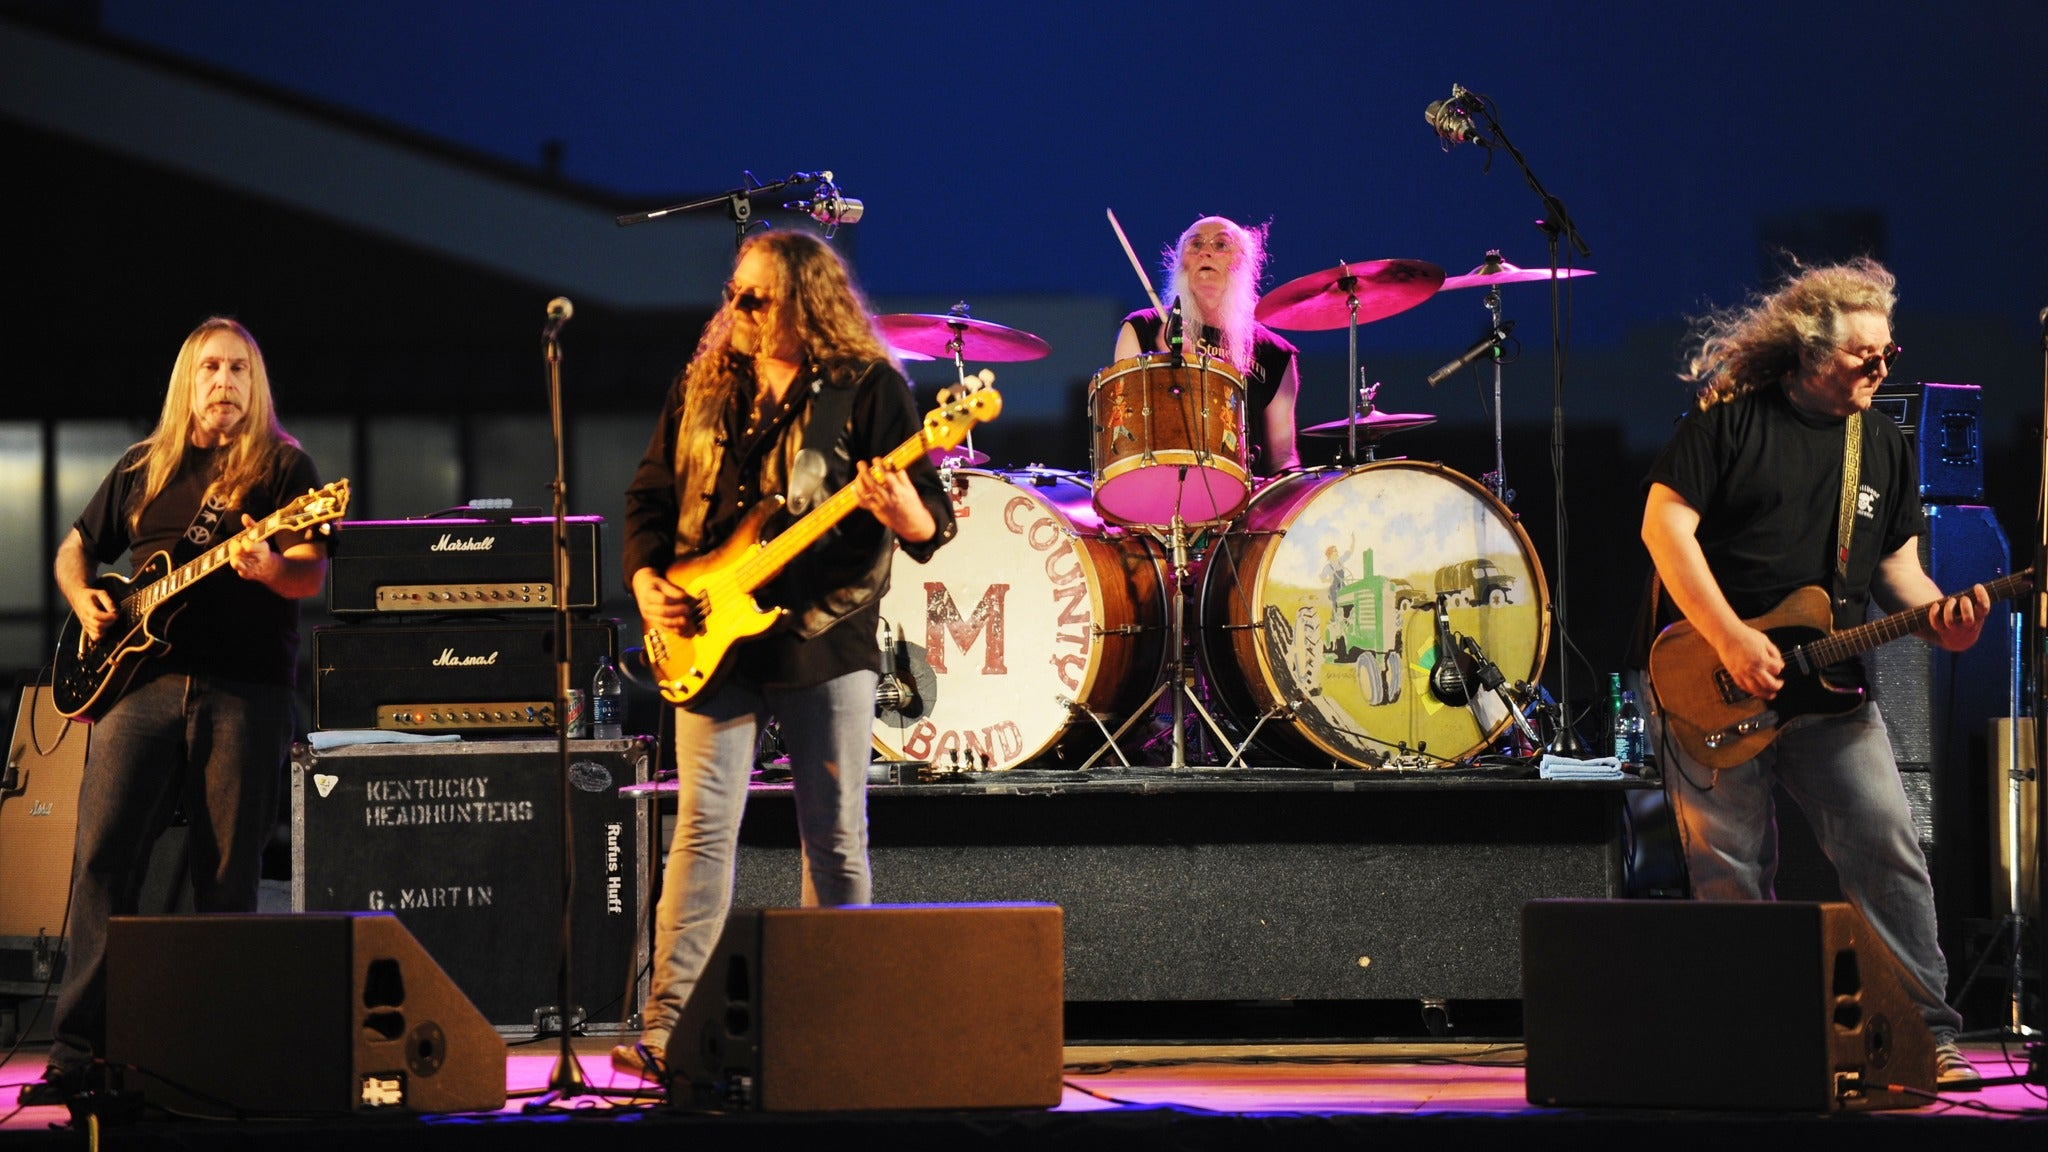 Kentucky Headhunters with Special Guest Buckshot VB